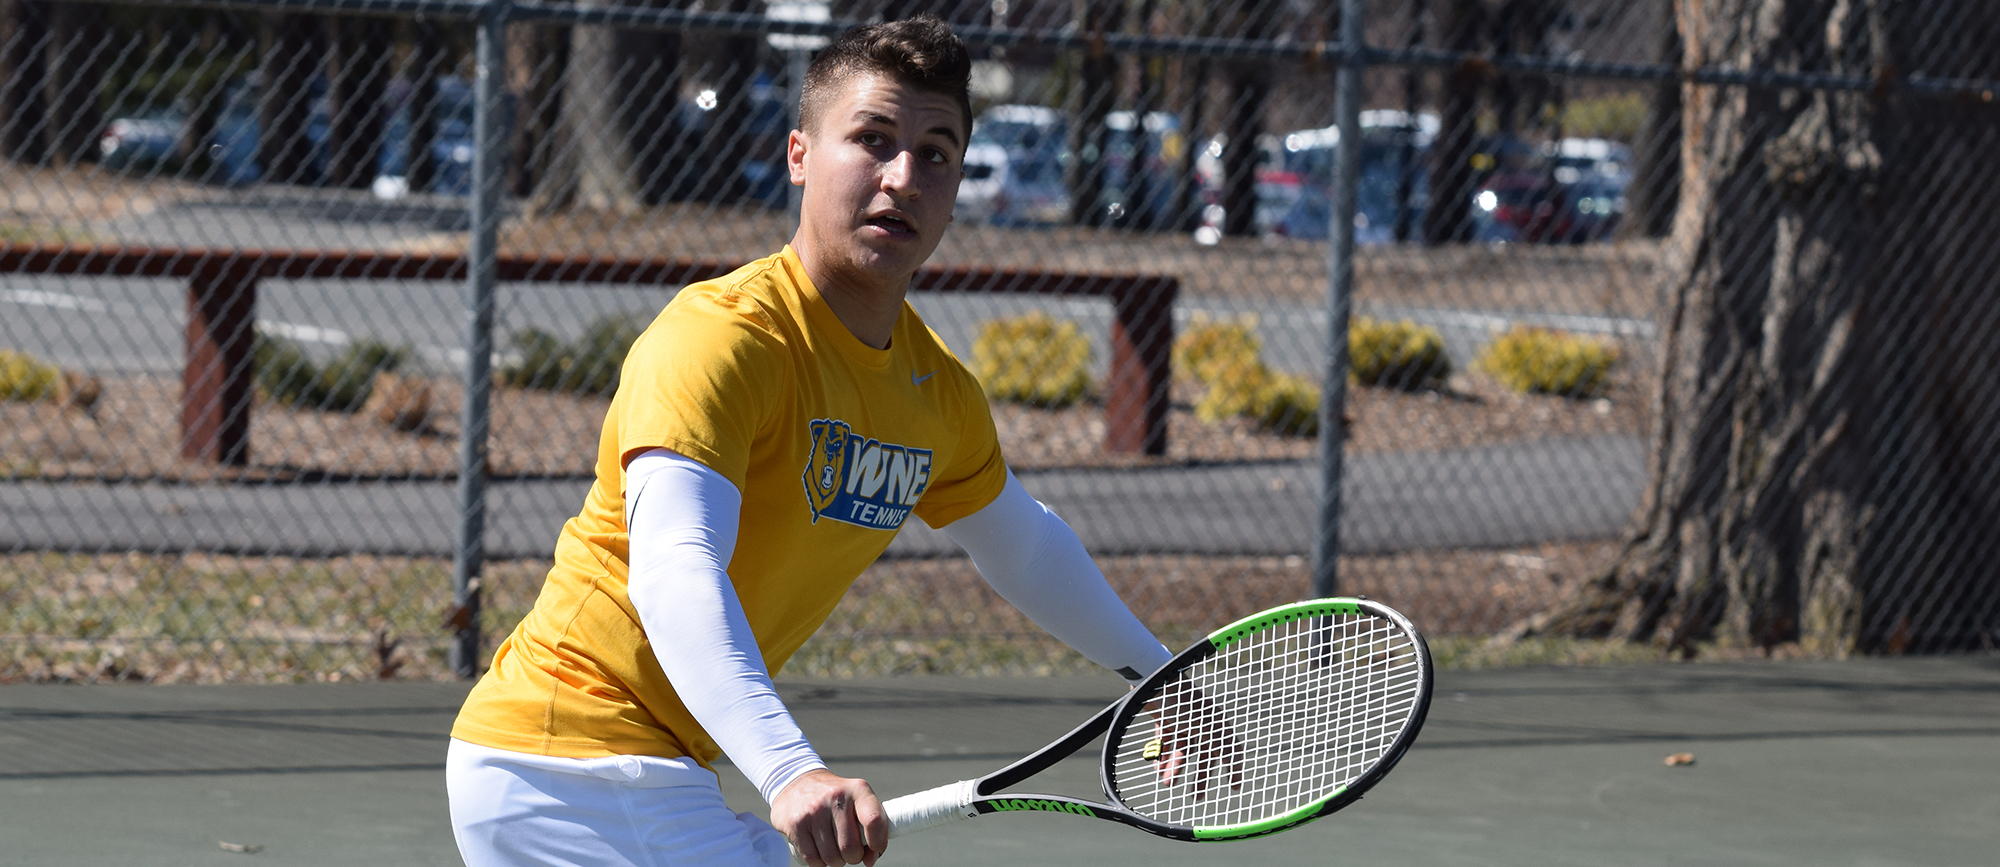 Sophomore David Kalmer improved to 9-1 in singles play, but WNE fell to Nichols 8-1 on Wednesday. (Photo by Rachael Margossian)